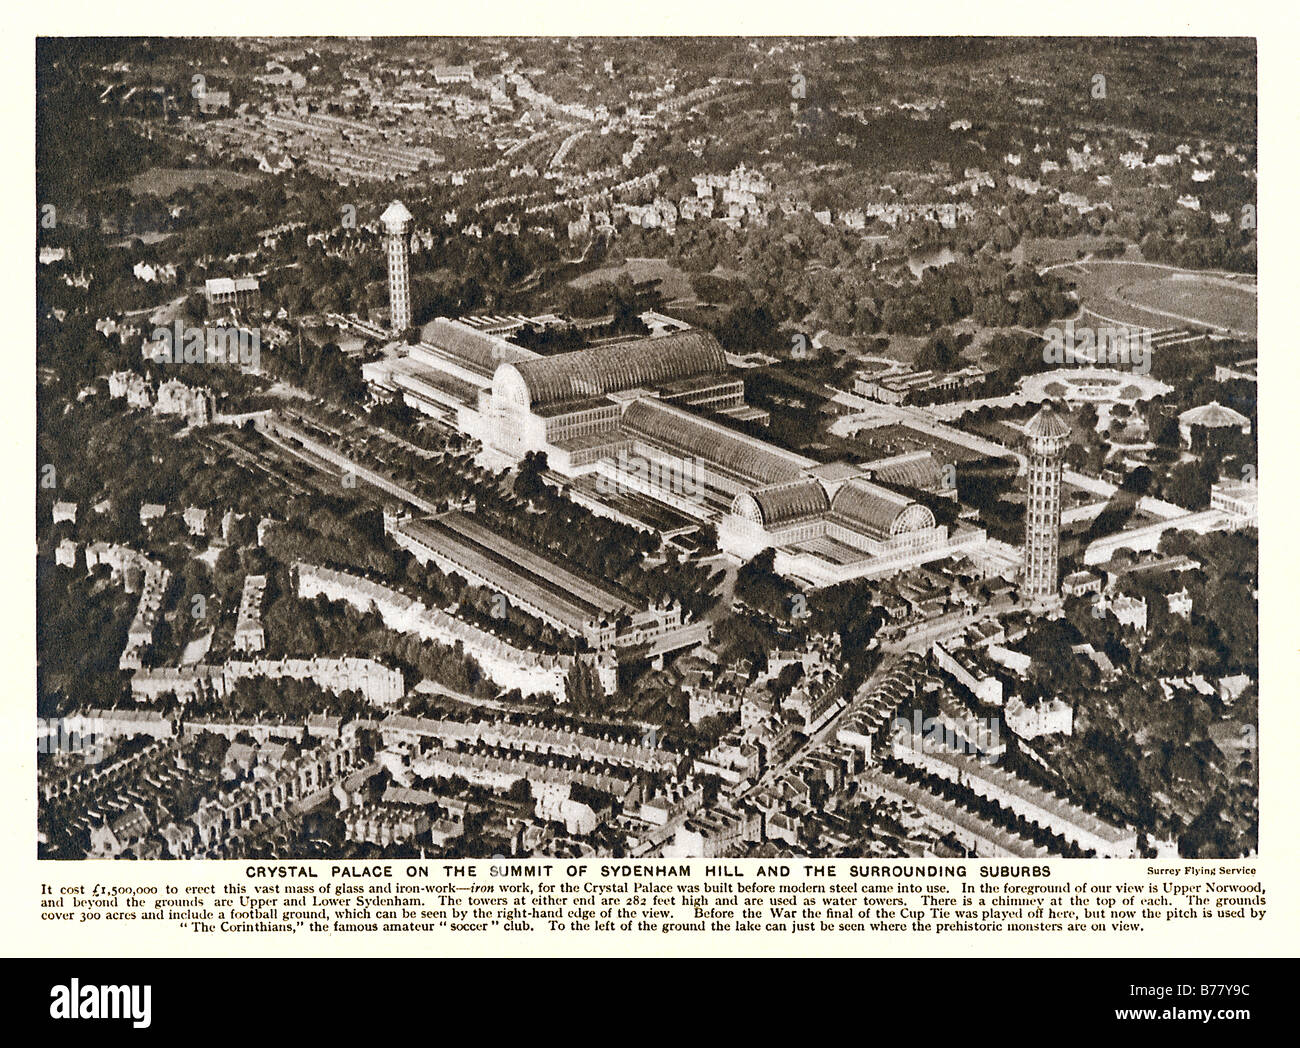 Crystal Palace Sydenham 1925 aerial photo of the glass exhibition hall moved from Hyde Park and burned down in 1936 - Stock Image